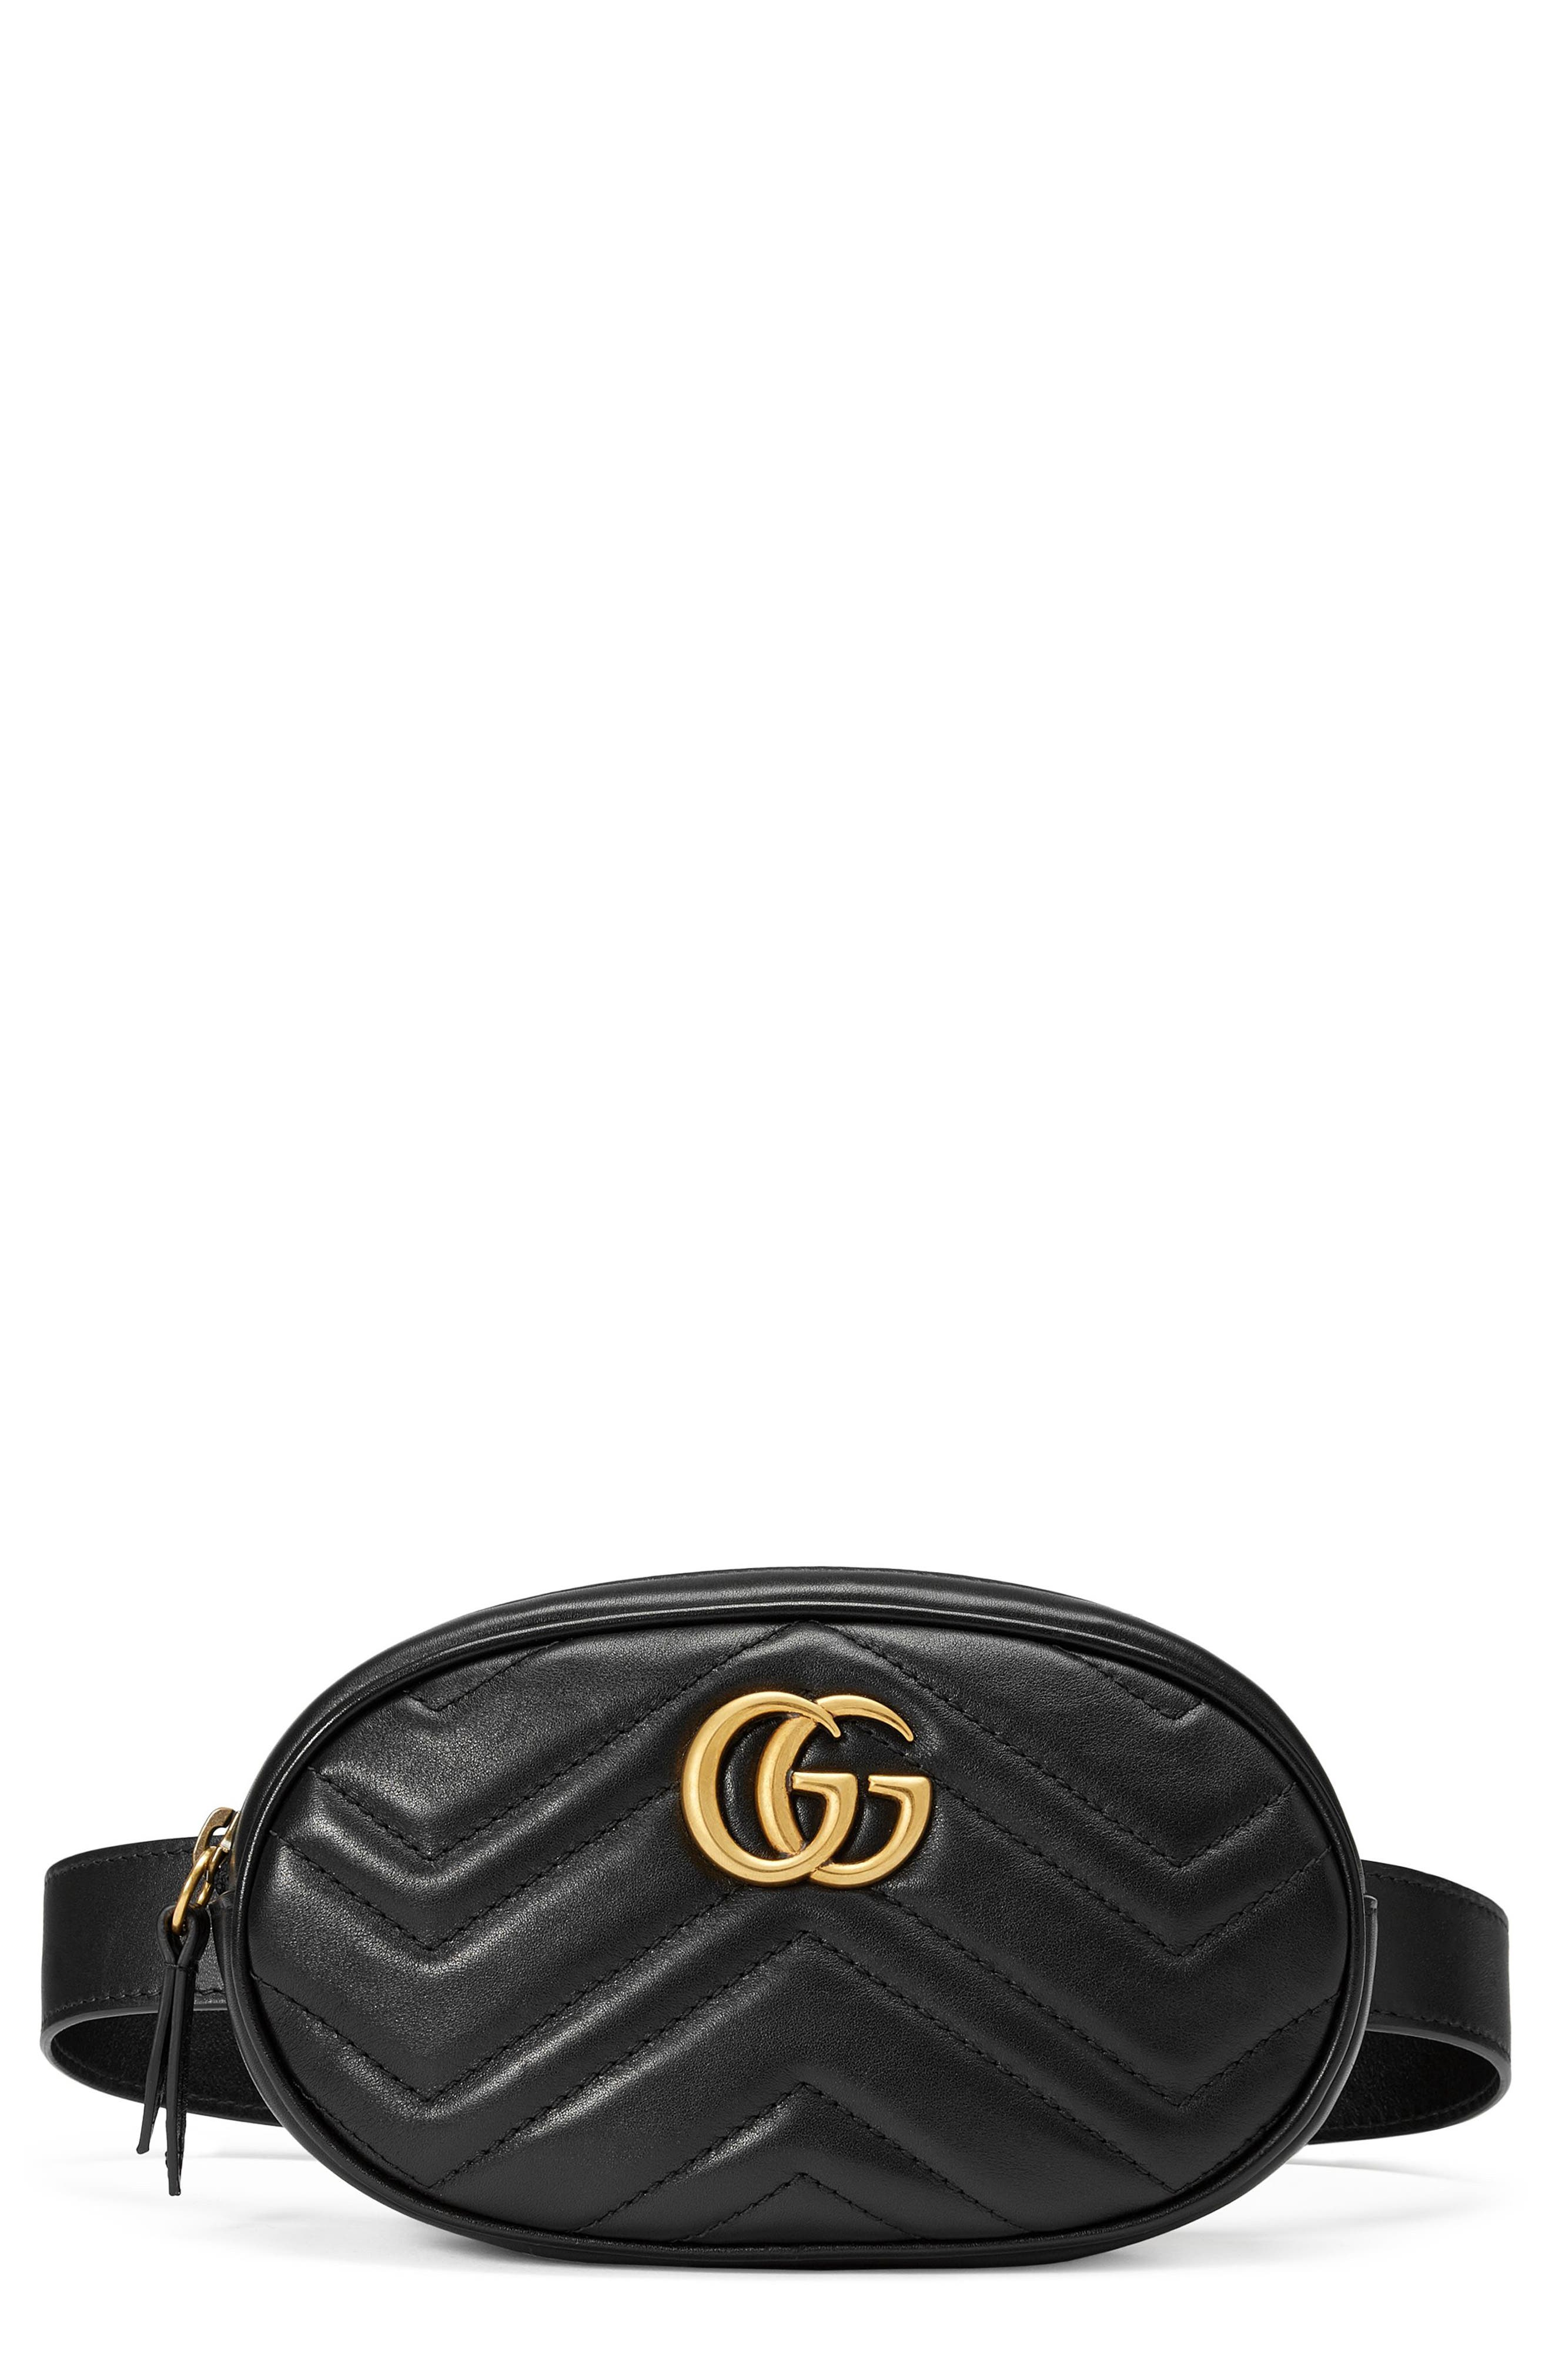 A jaunty addition to the GG Marmont line, this leather belt bag features matelasse chevrons, double-G hardware in a warm golden tone and a just-right interior. Style Name: Gucci Gg Matelasse Leather Belt Bag. Style Number: 5491129. Available in stores.